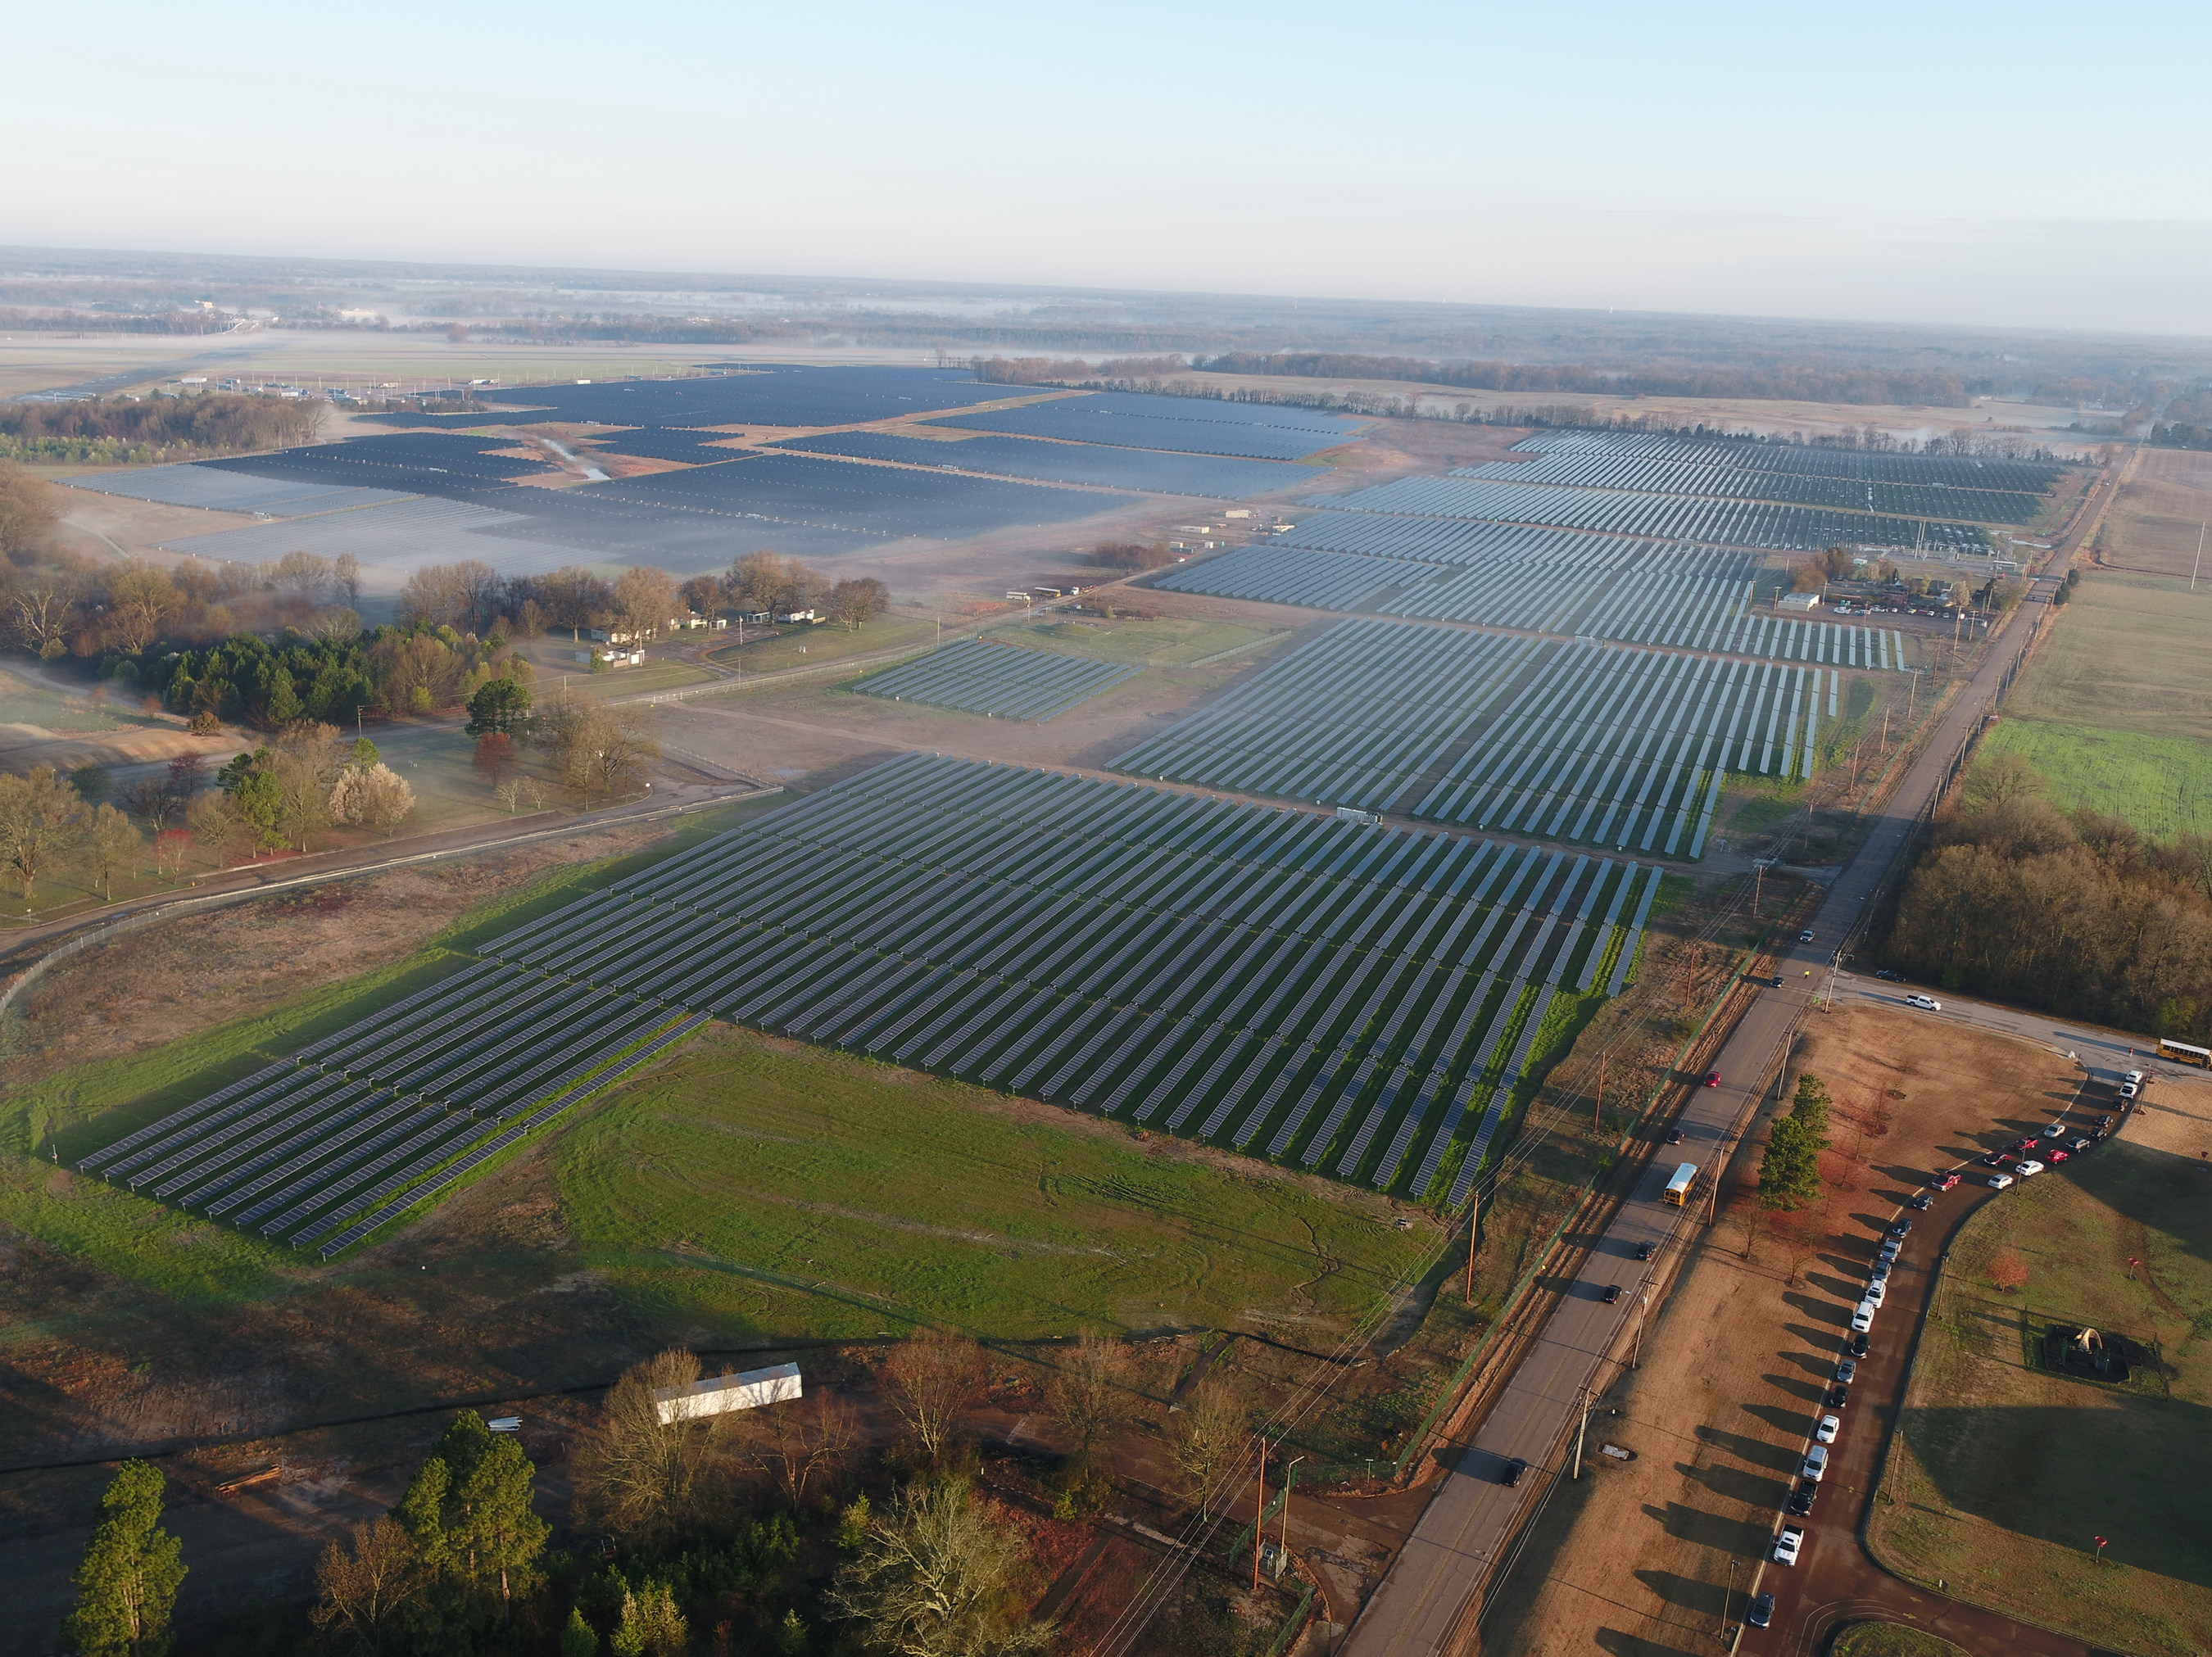 Tennessee's Largest Solar Farm Is Now Operational at Millington Naval Facility - Photo Courtesy of Silicon Ranch